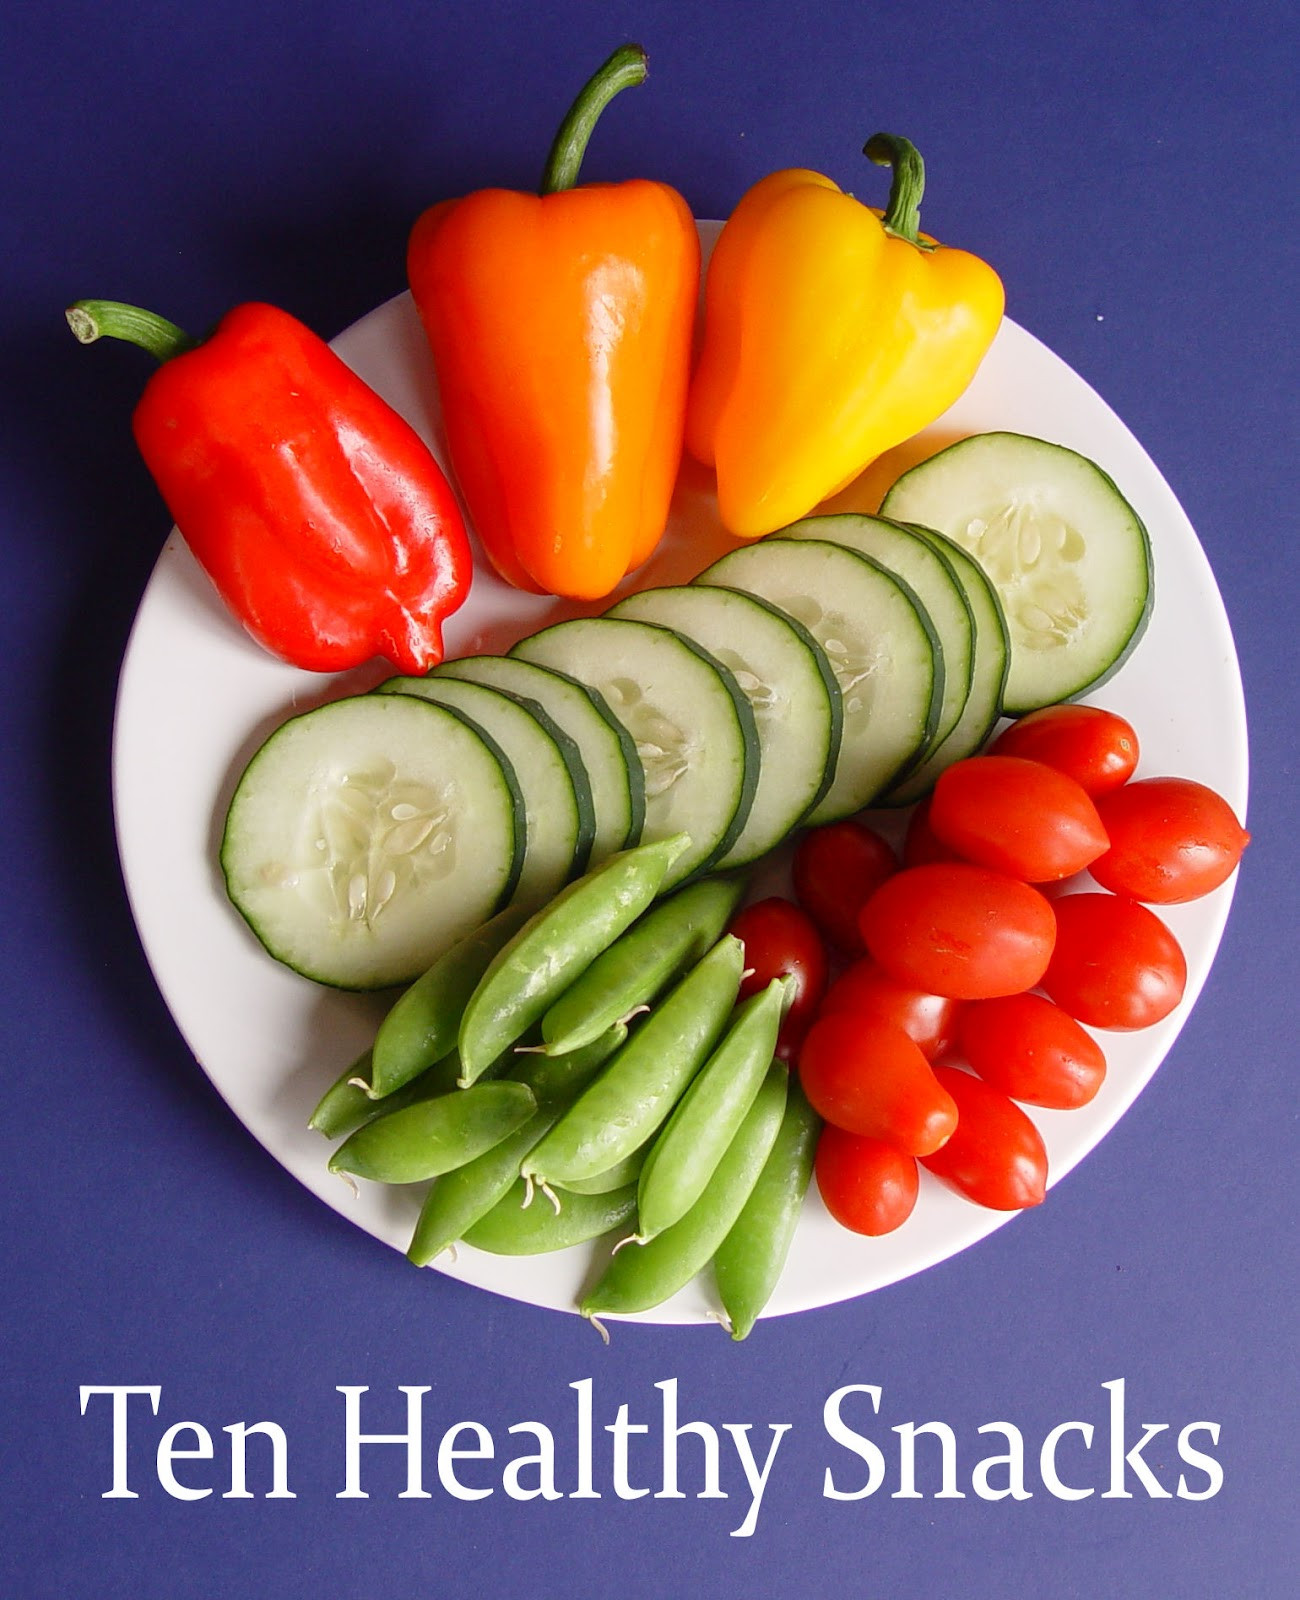 Pictures Of Healthy Snacks  Ten Healthy Snacks with Printable Page